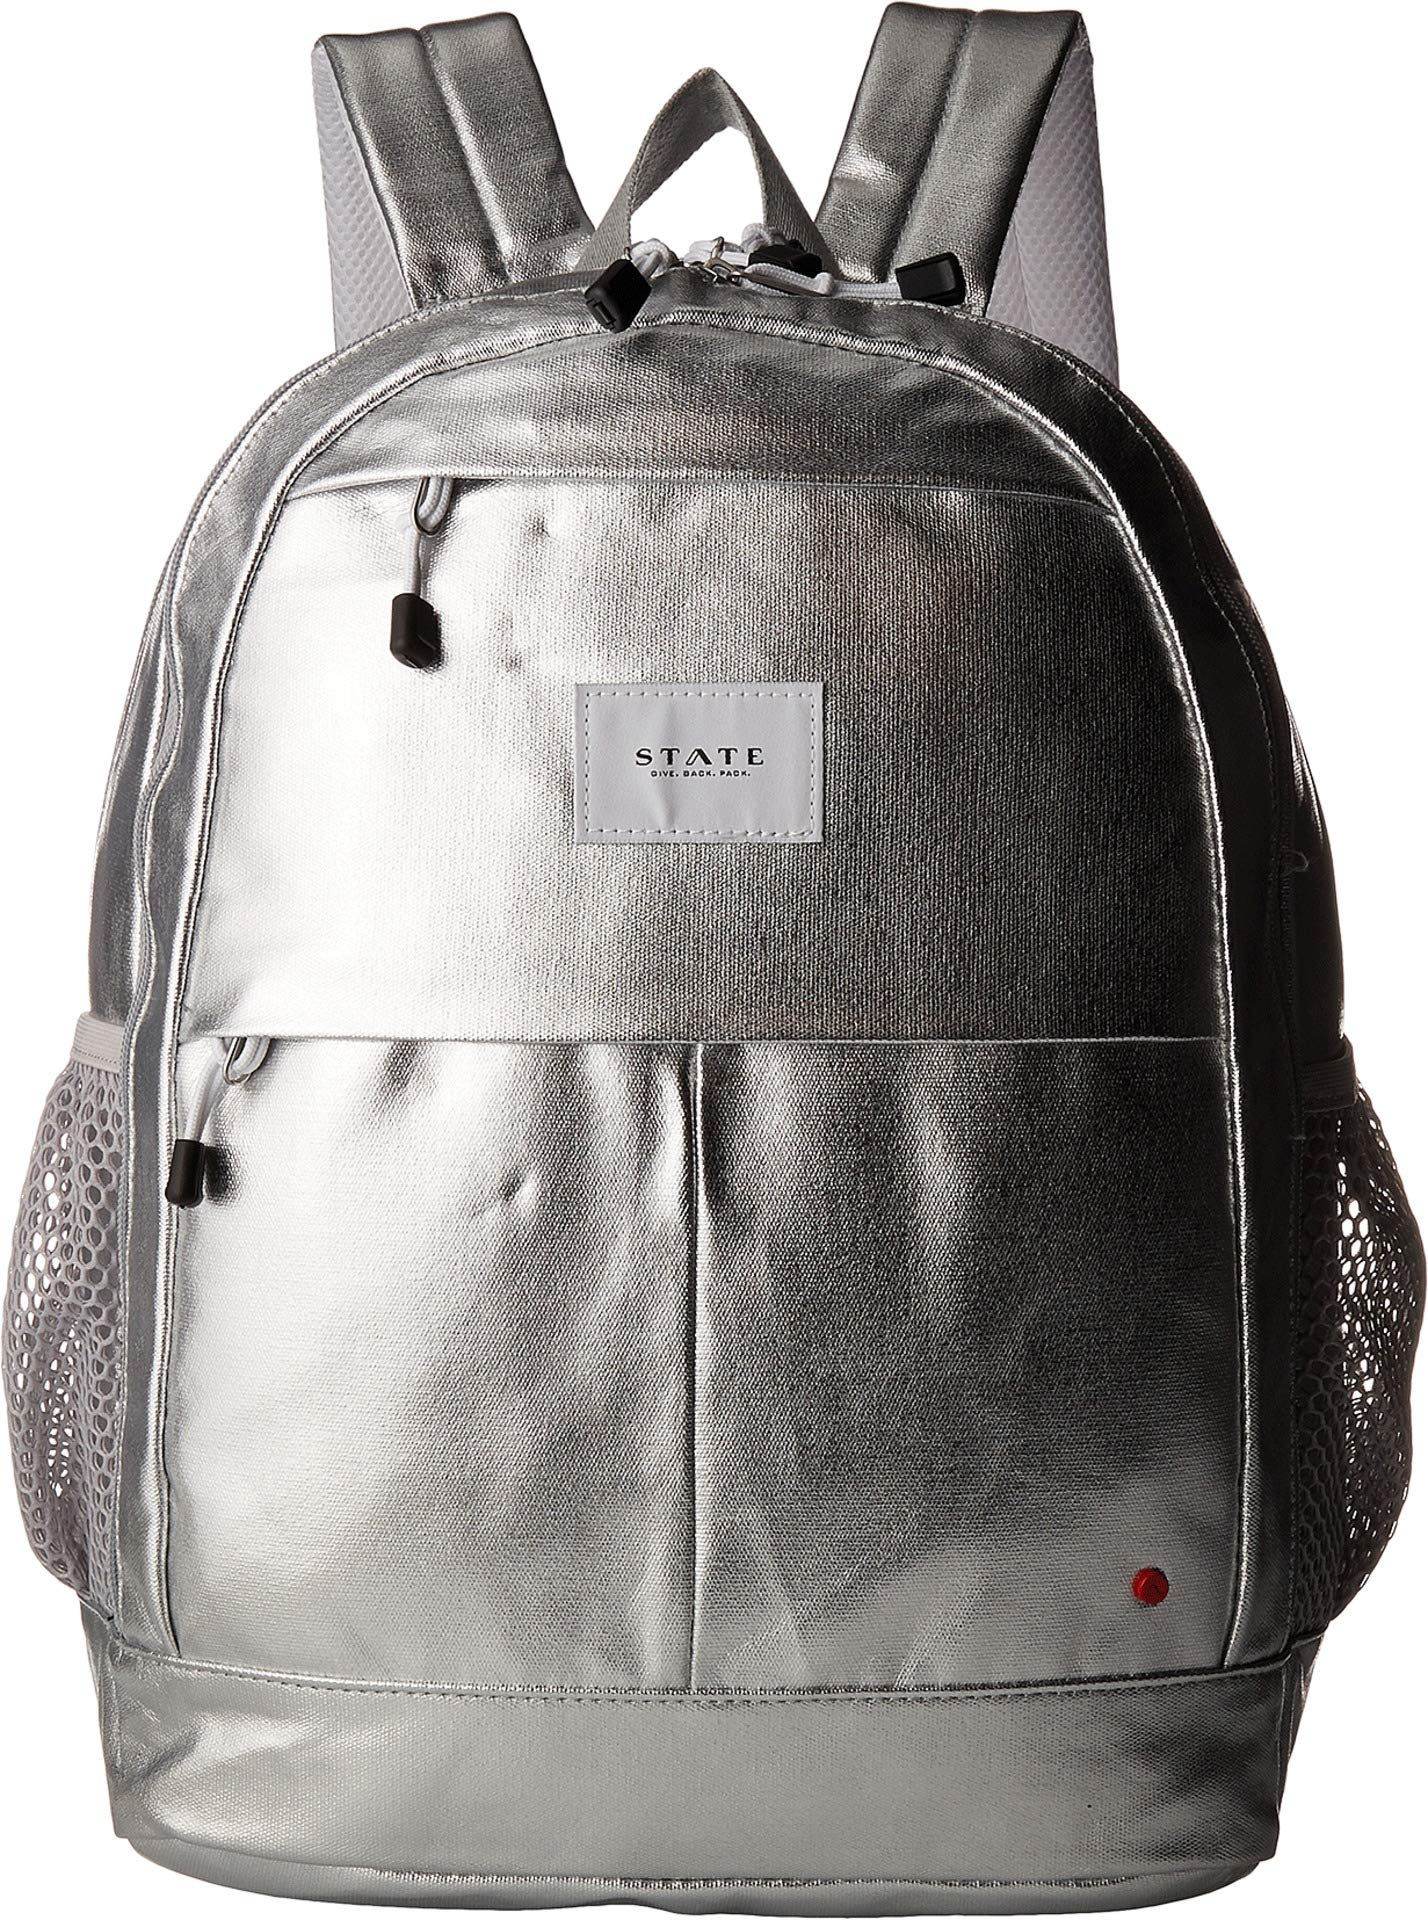 STATE Bags Women's Metallic Leny Backpack Silver One Size by STATE Bags